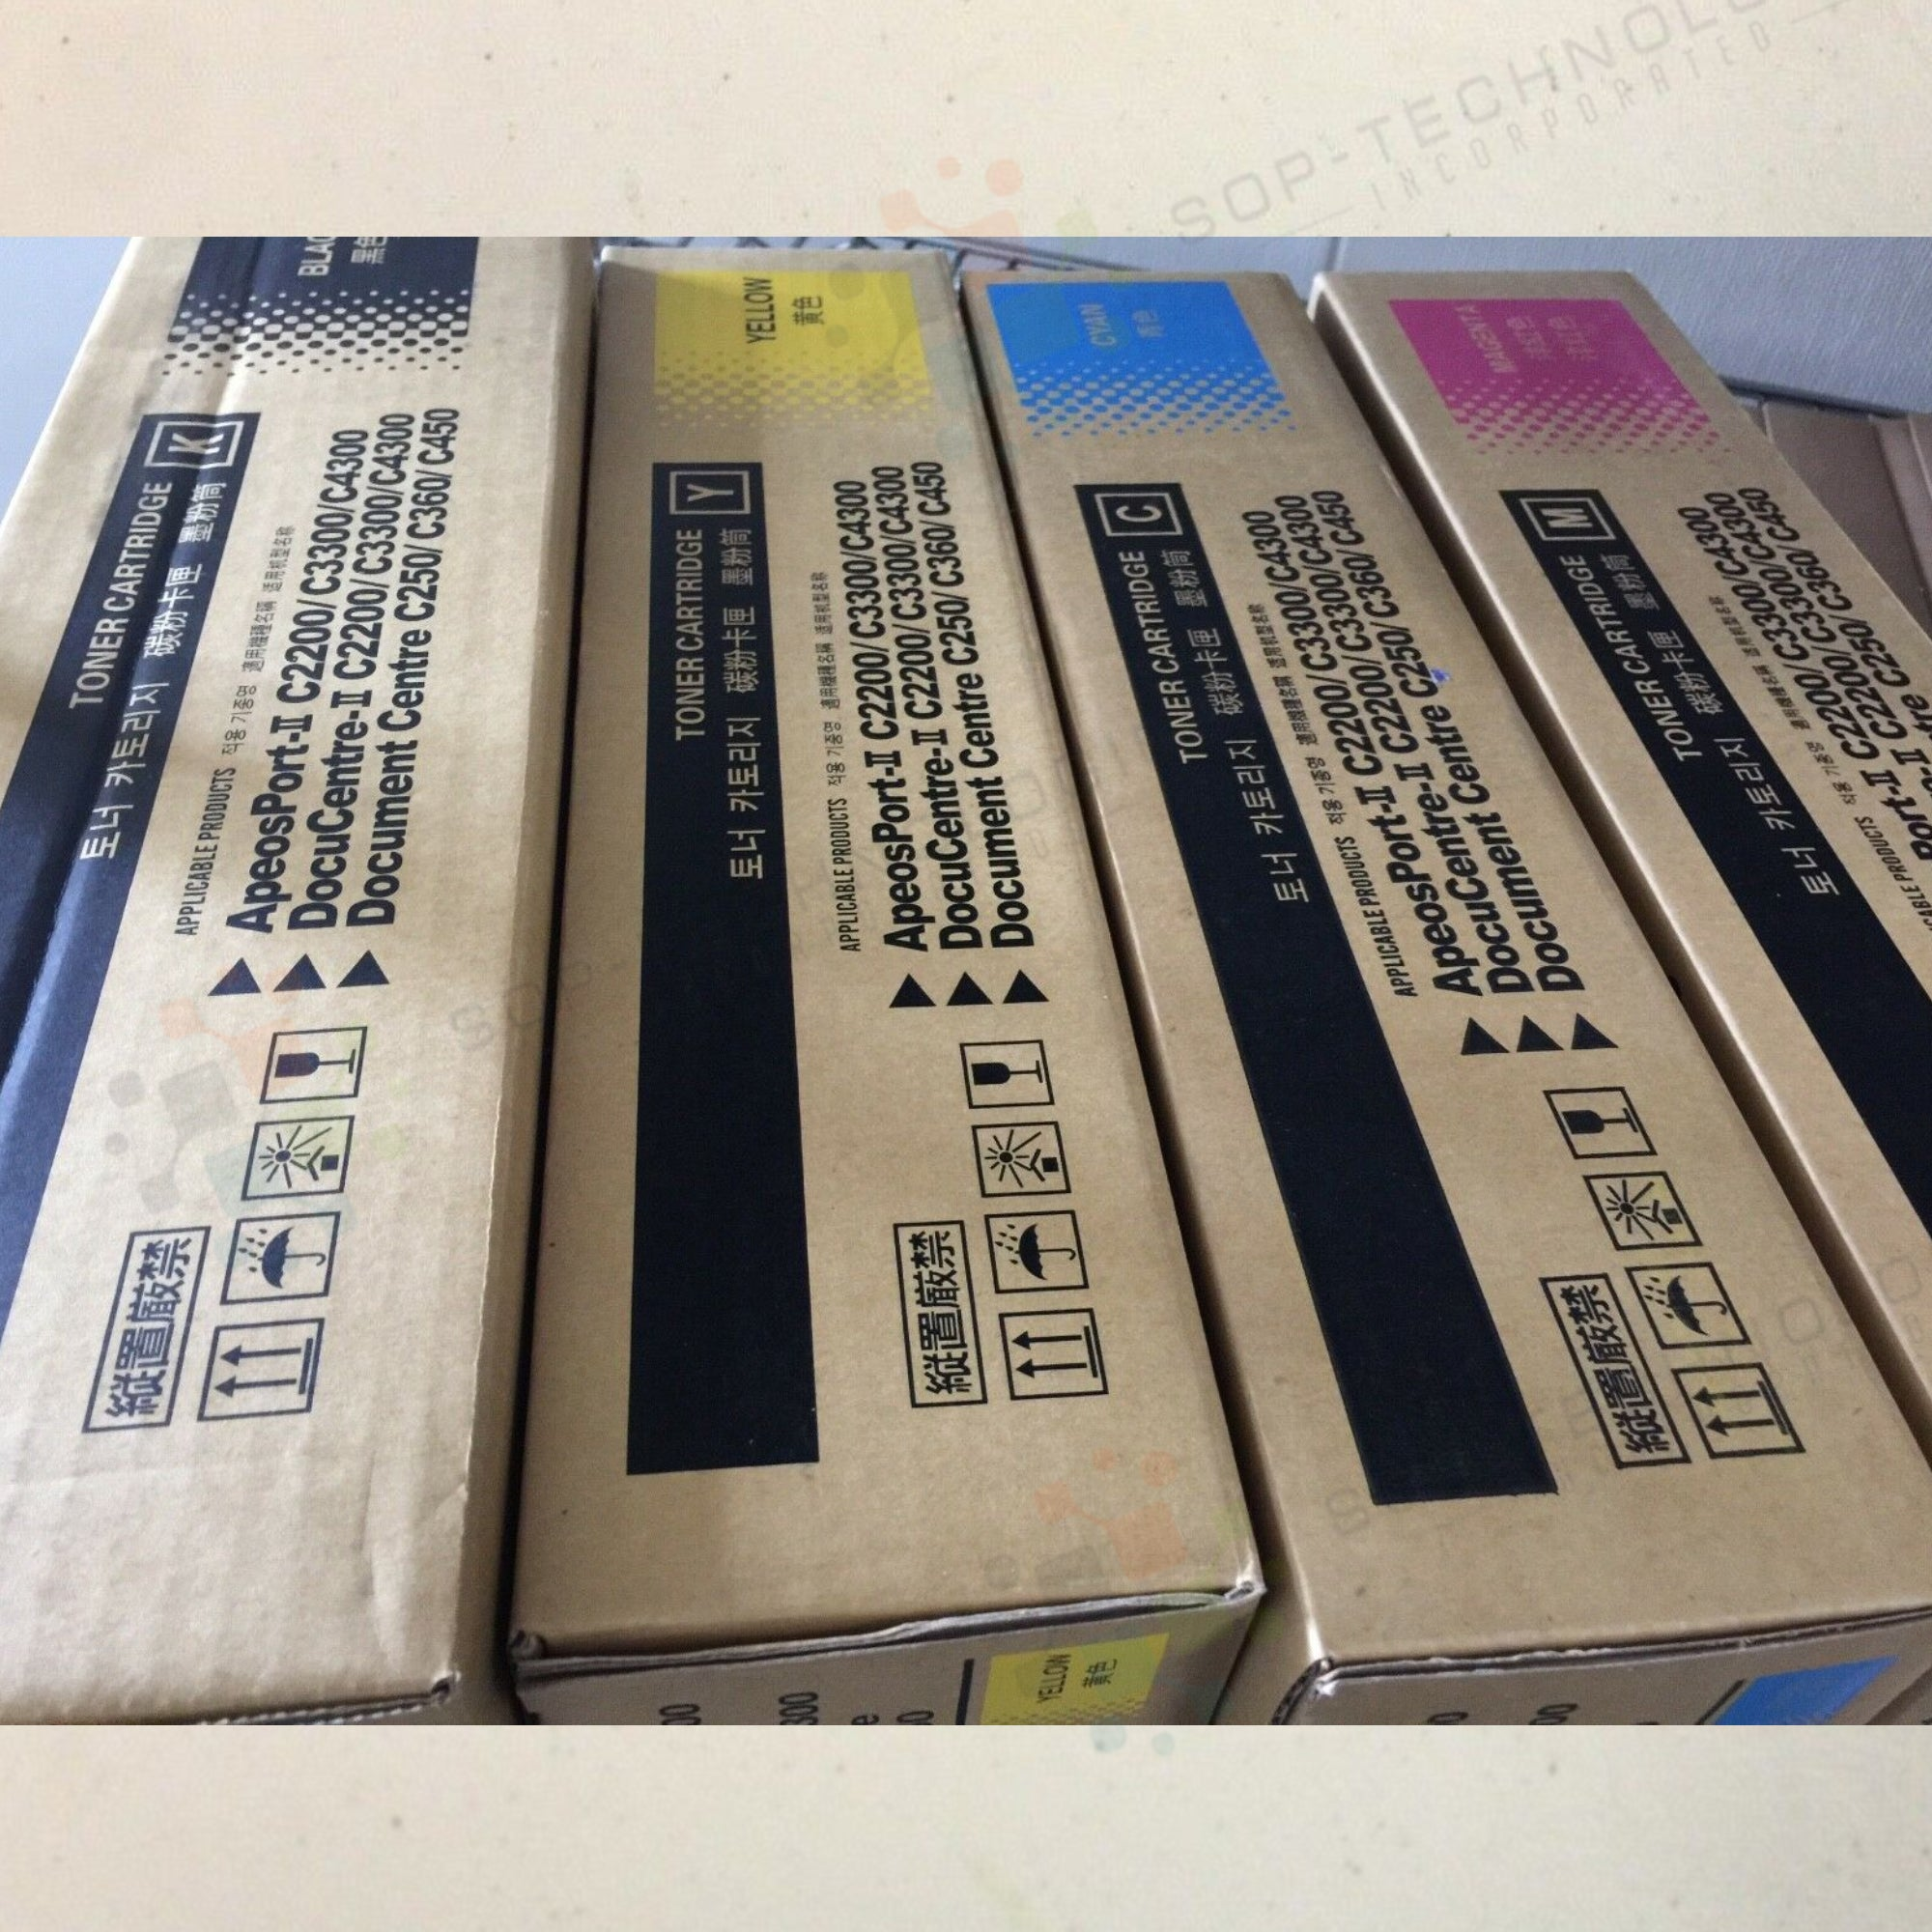 4 Pack for Xerox DocumenCentre C250 C360 C450 Toner Cartridges - SOP-TECHNOLOGIES, INC.